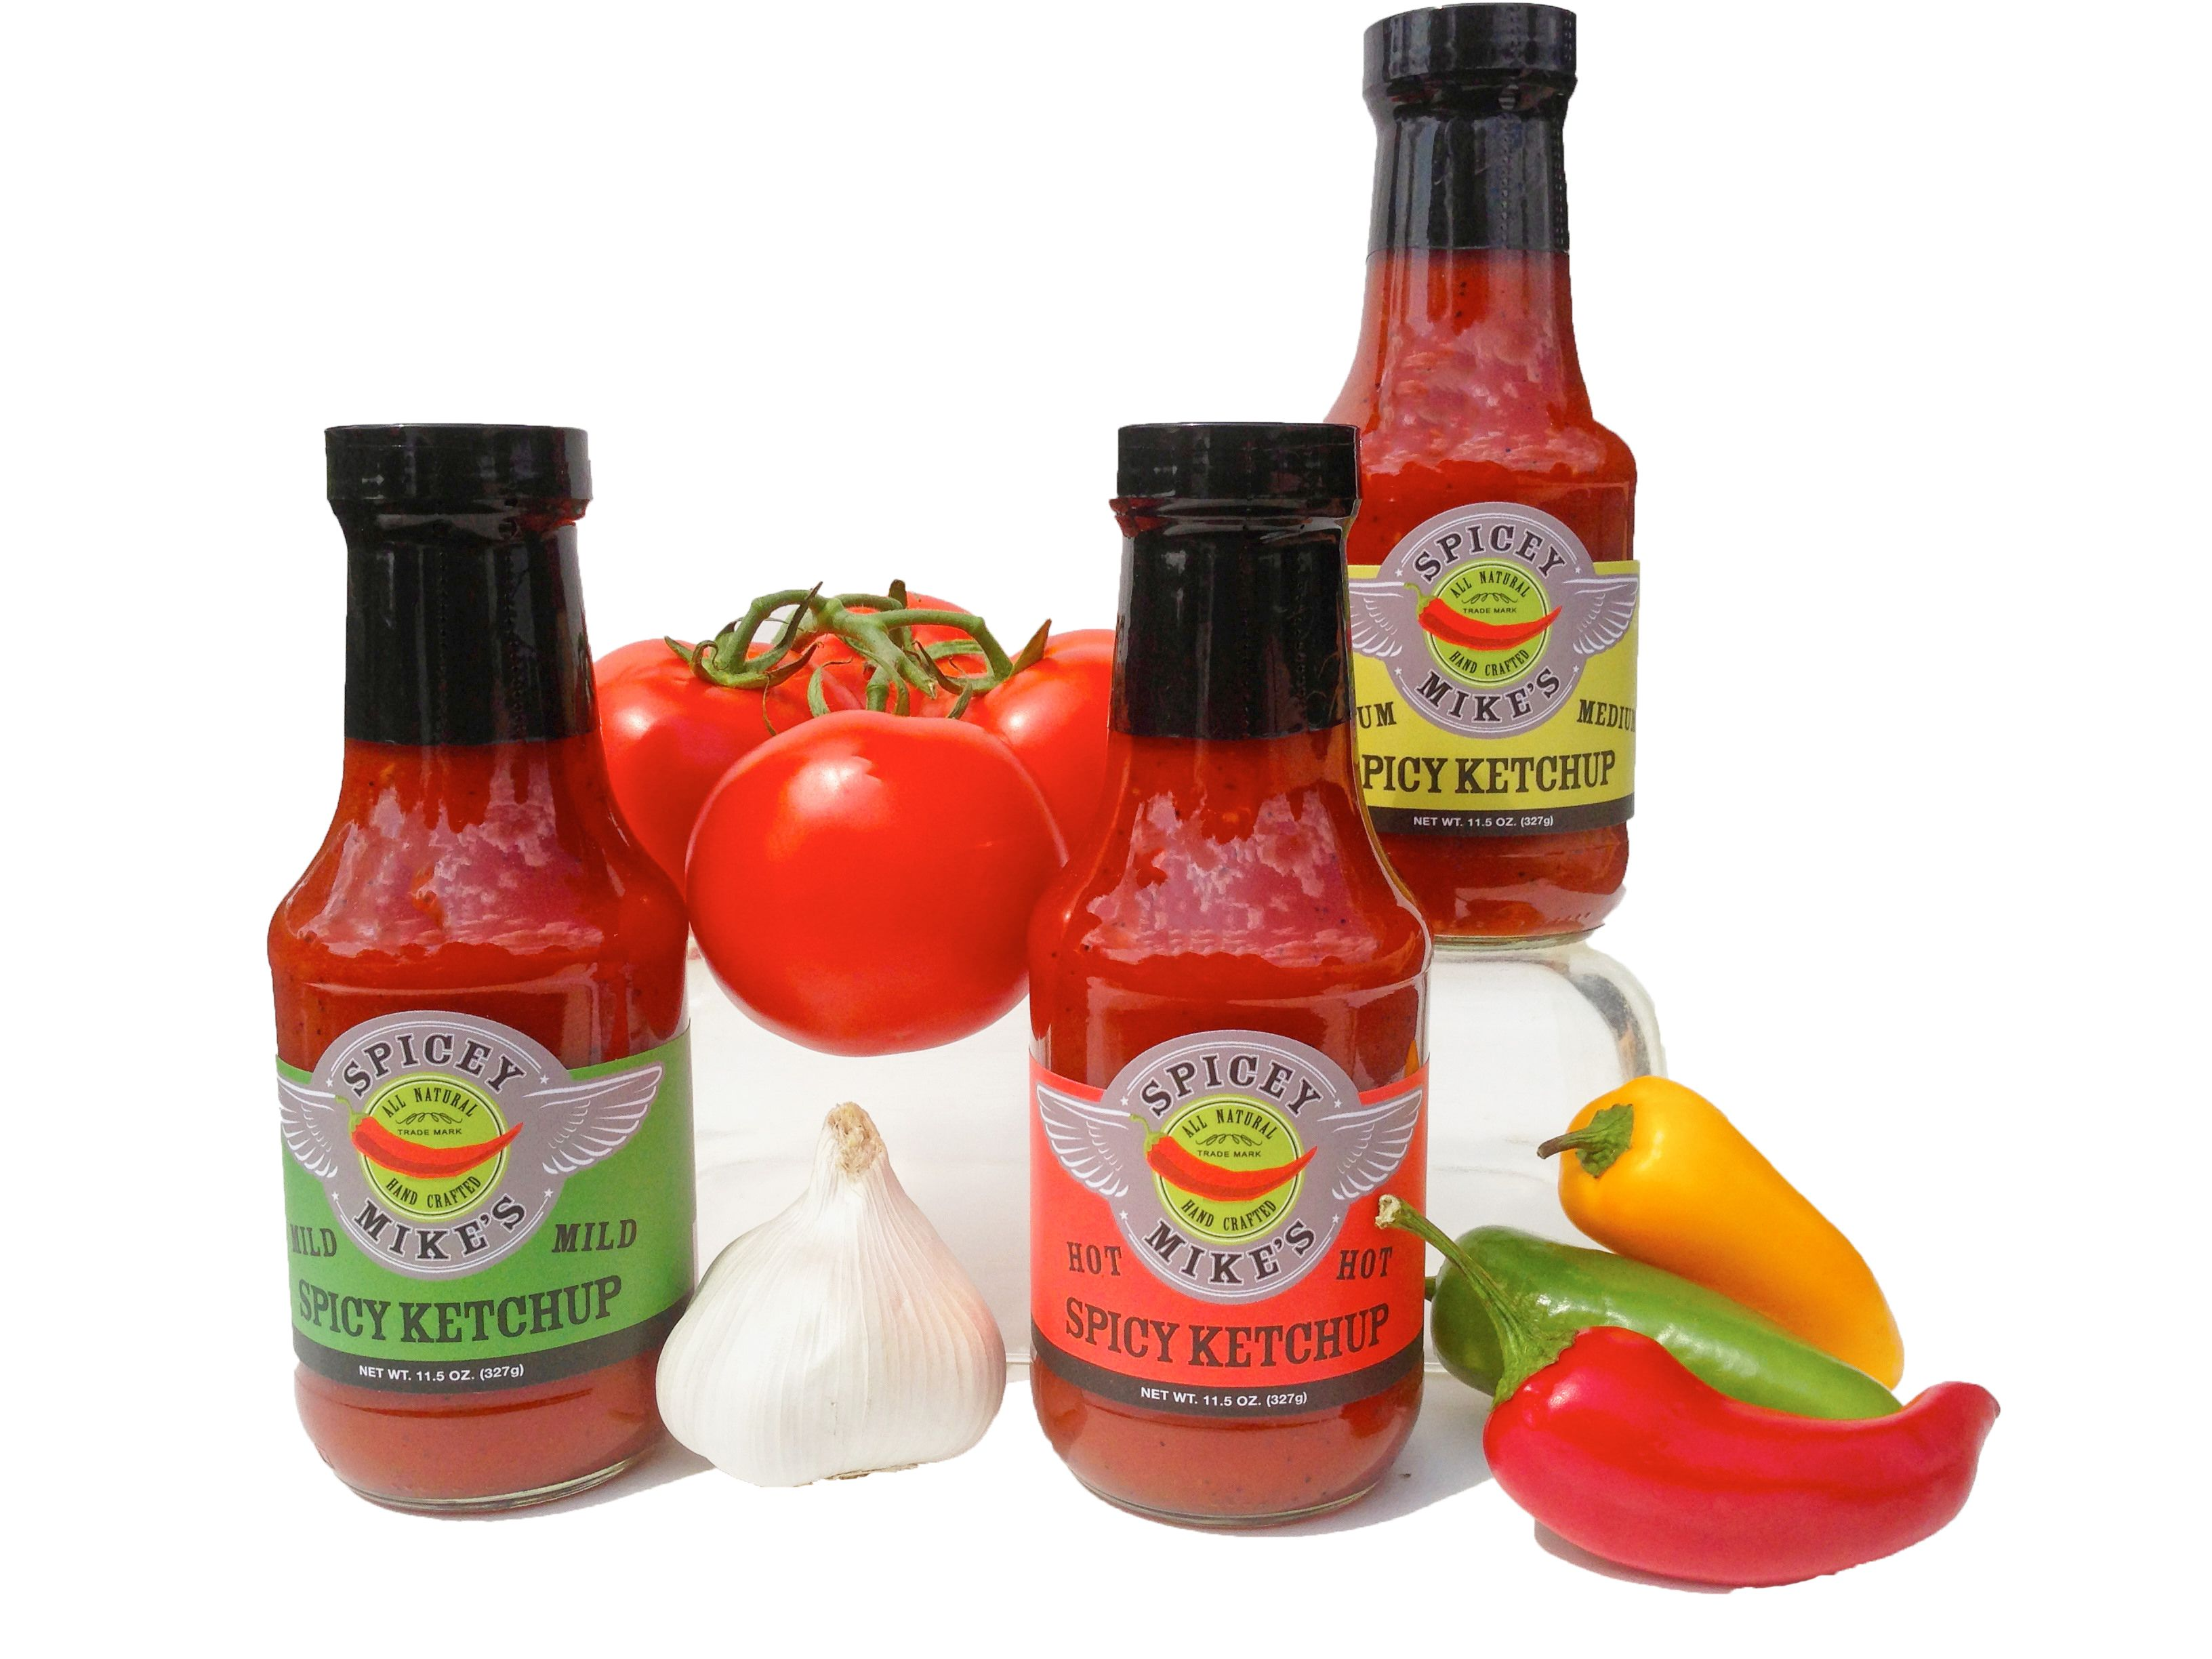 All Natural Spicy Mike's Spicy Ketchup - Hot - Medium - Mild order on #Amazon